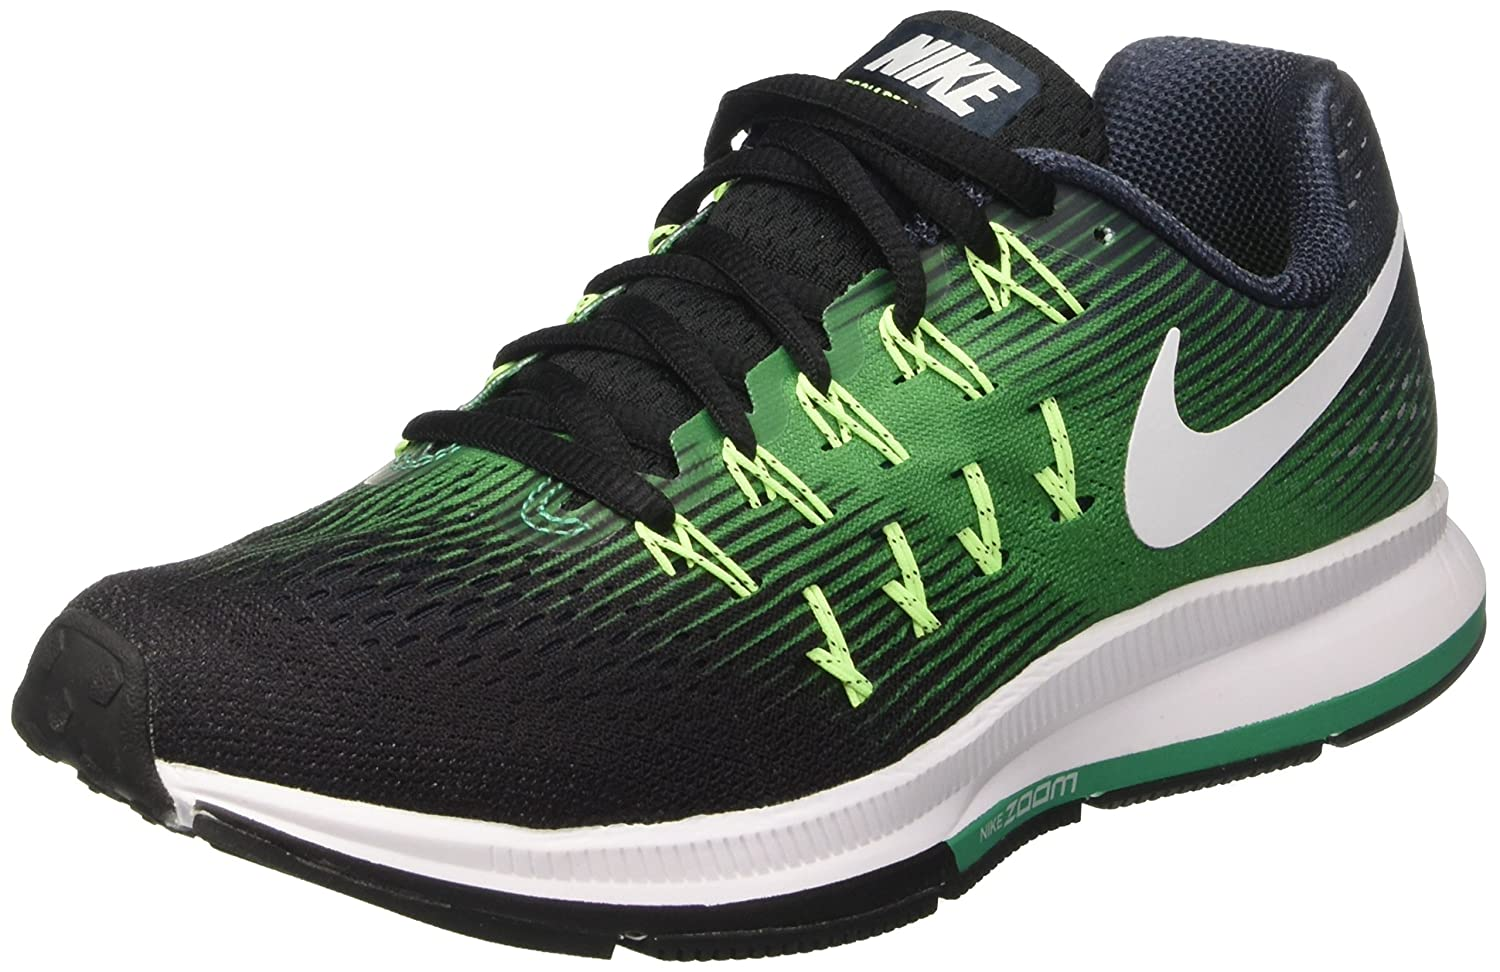 Nike Men's Air Zoom Pegasus 33 B01H2MDX52 12 D(M) US|Armory Navy/White/Black/Stadium Green